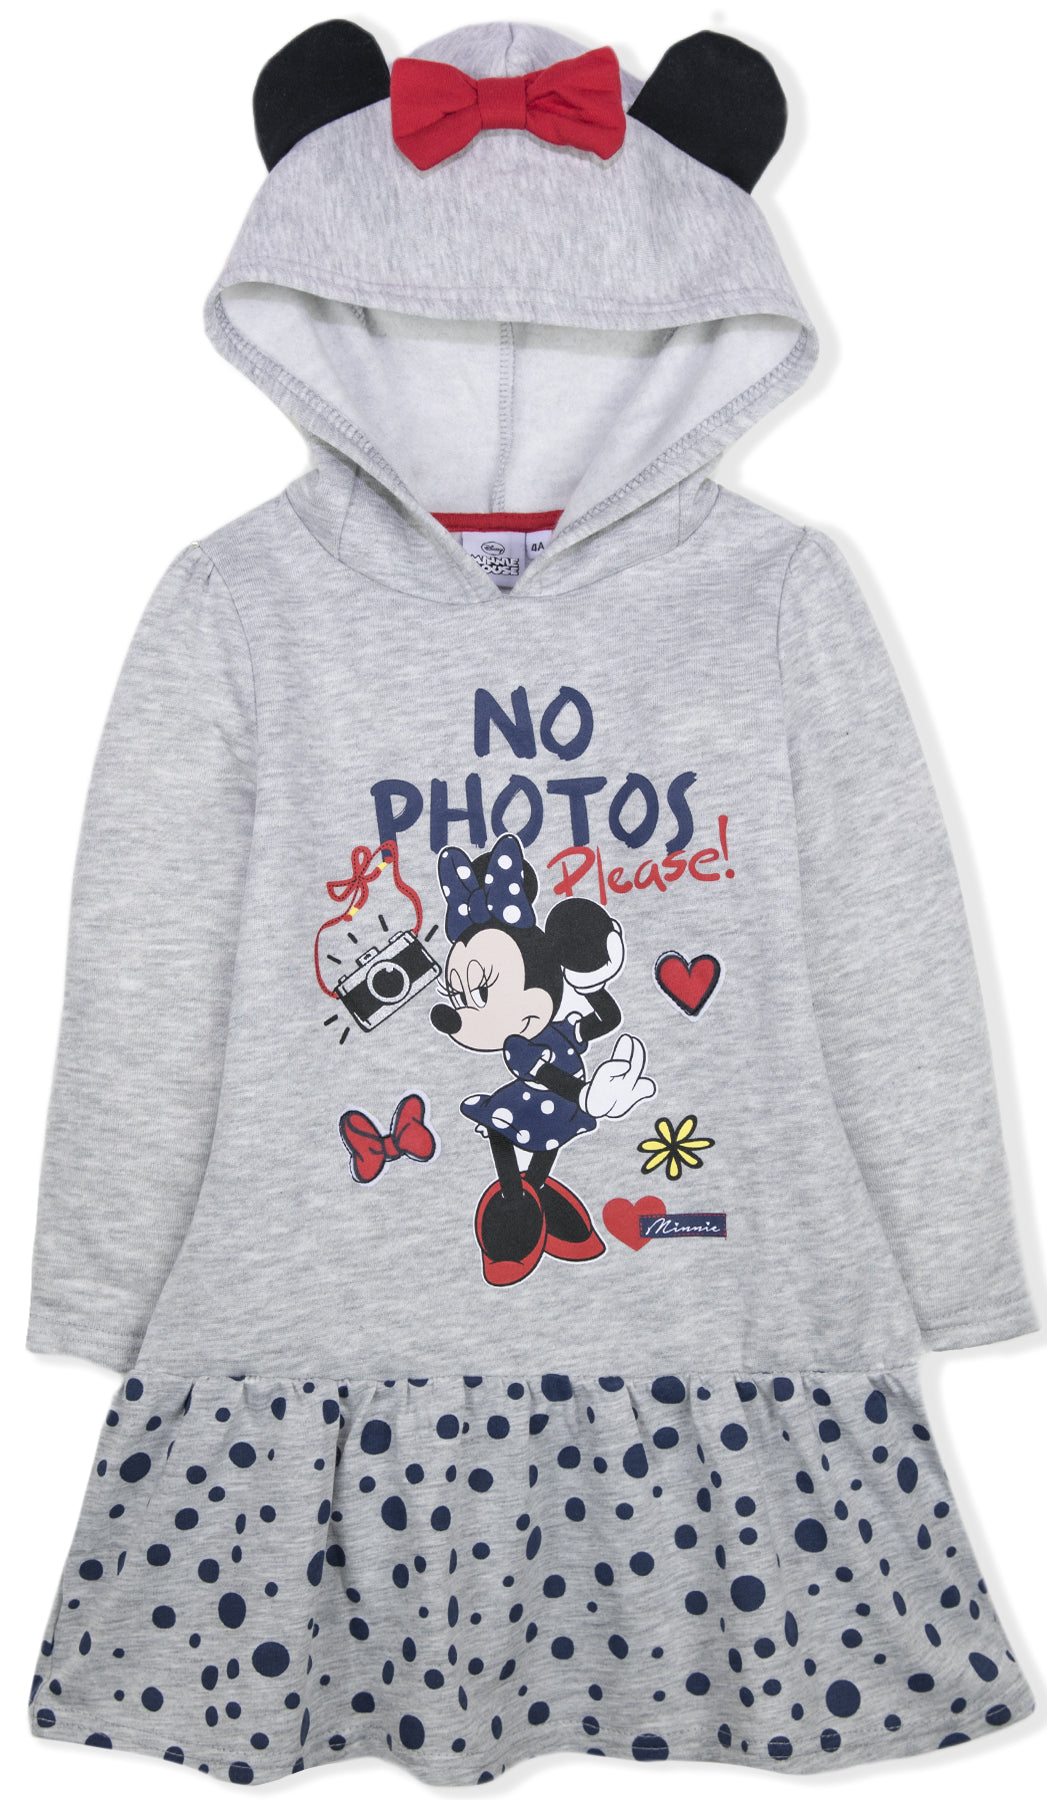 Disney Official Minnie Mouse Girls Hoodie Dress Long Tunic Sweatshirt Short Sleeve 2-8 Years New 2018